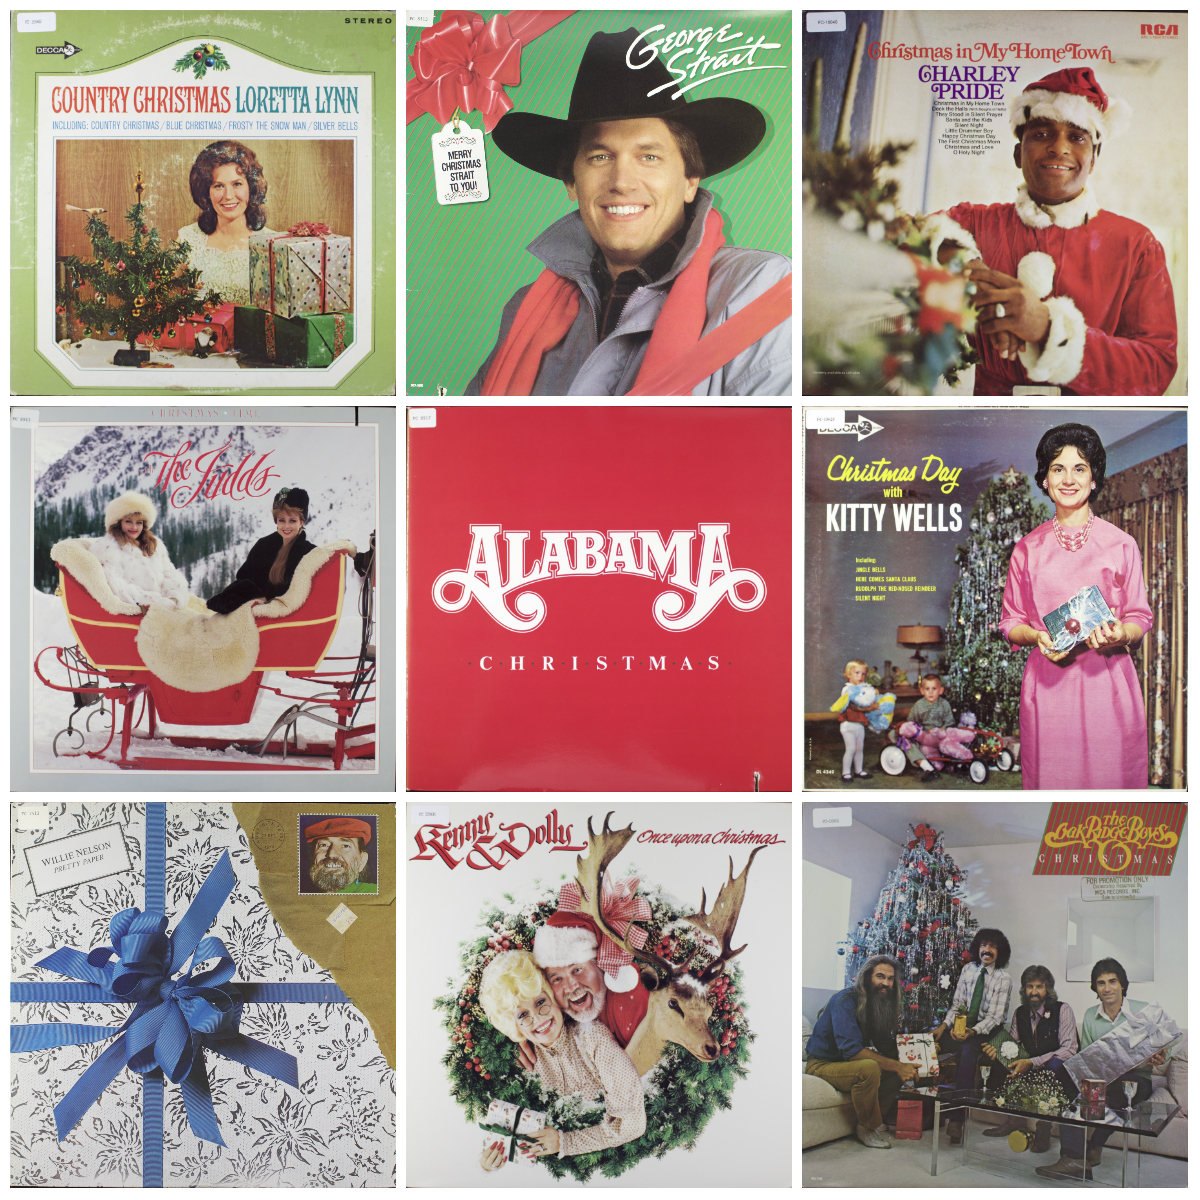 A selection of LP covers for holiday records produced by country music stars, Loretta Lynn, George Strait, Charley Pride, The Judds, Alabama, Kitty Wells, Willie Nelson, Kenny and Dolly, and the Oak Ridge Boys